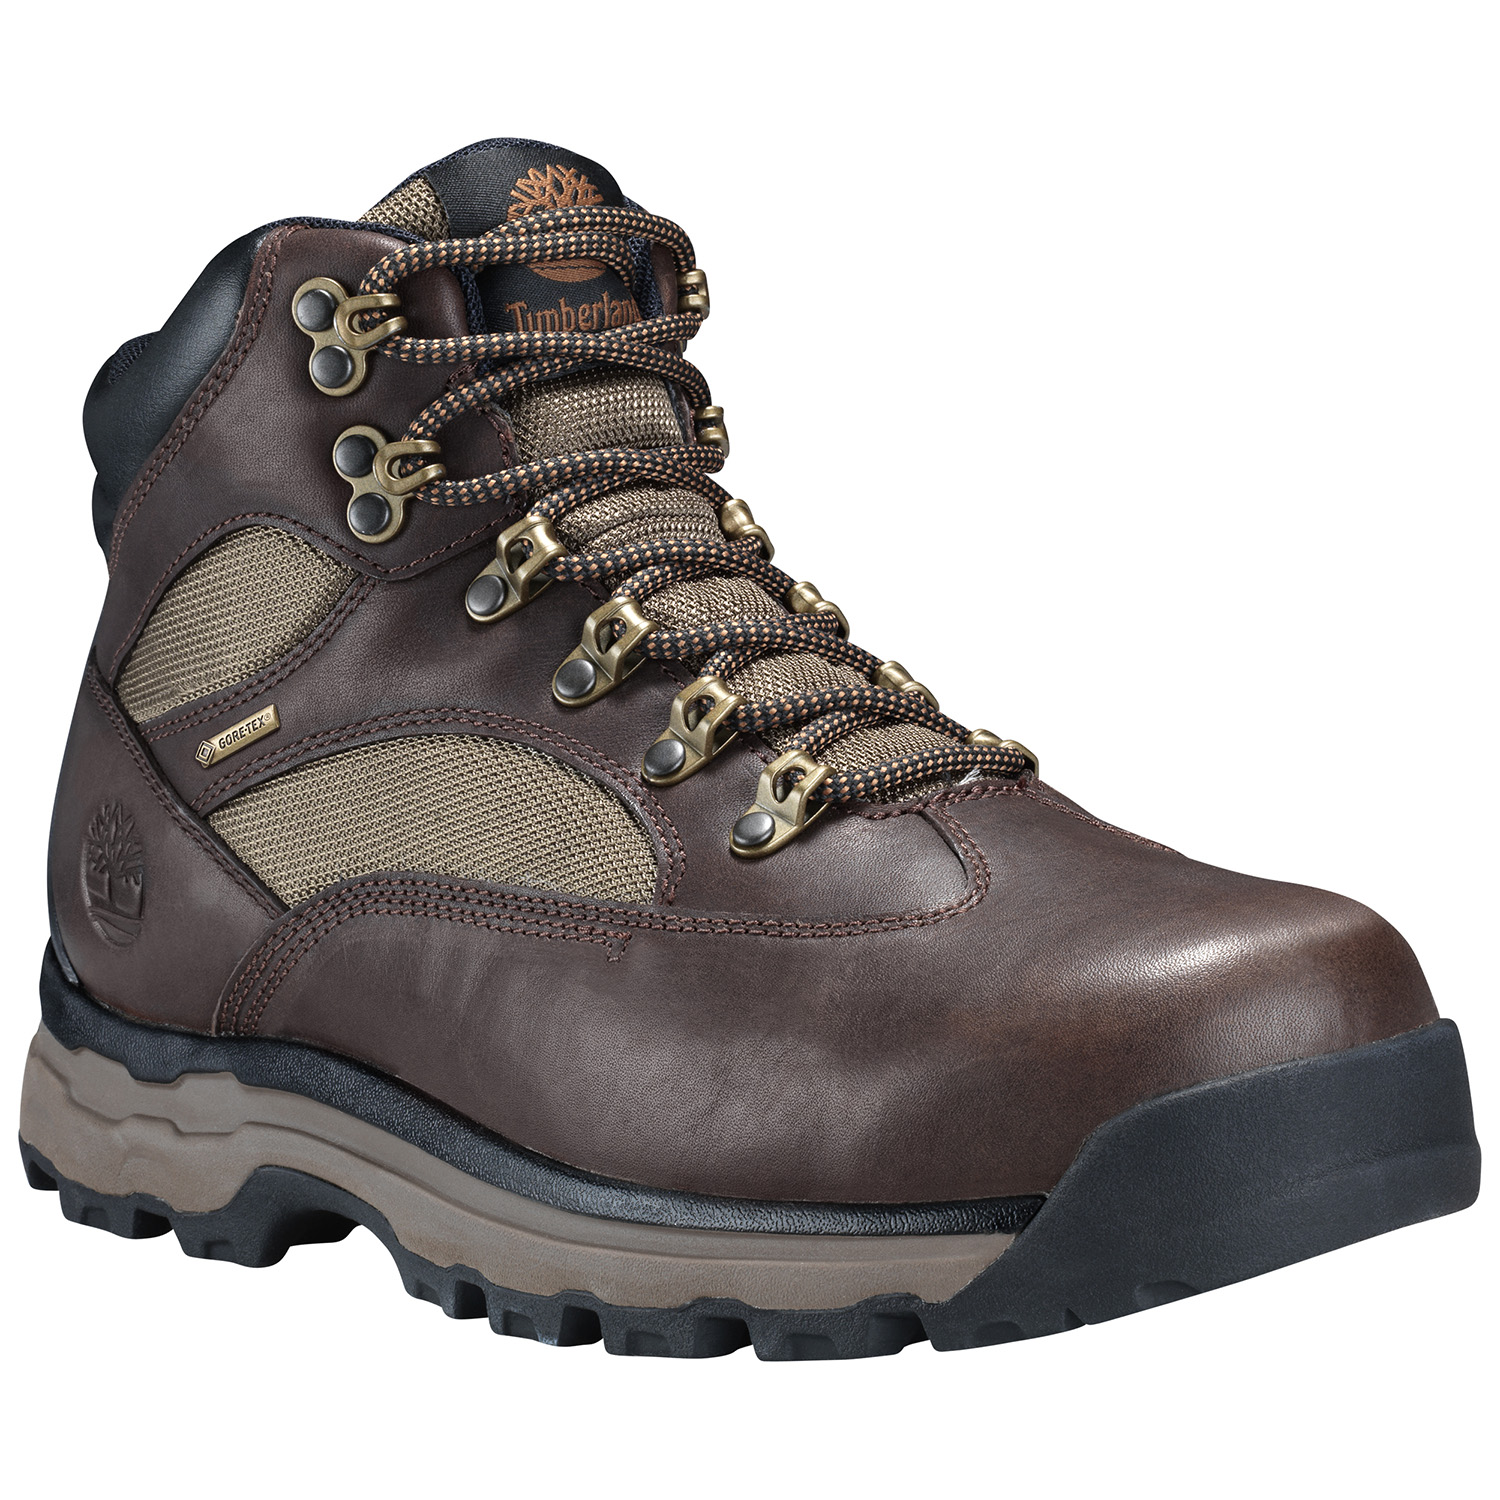 c93eb948421 Details about Men's Timberland Chocorua Trail 2 Mid Gore-Tex Hiking Boot  Dark Brown